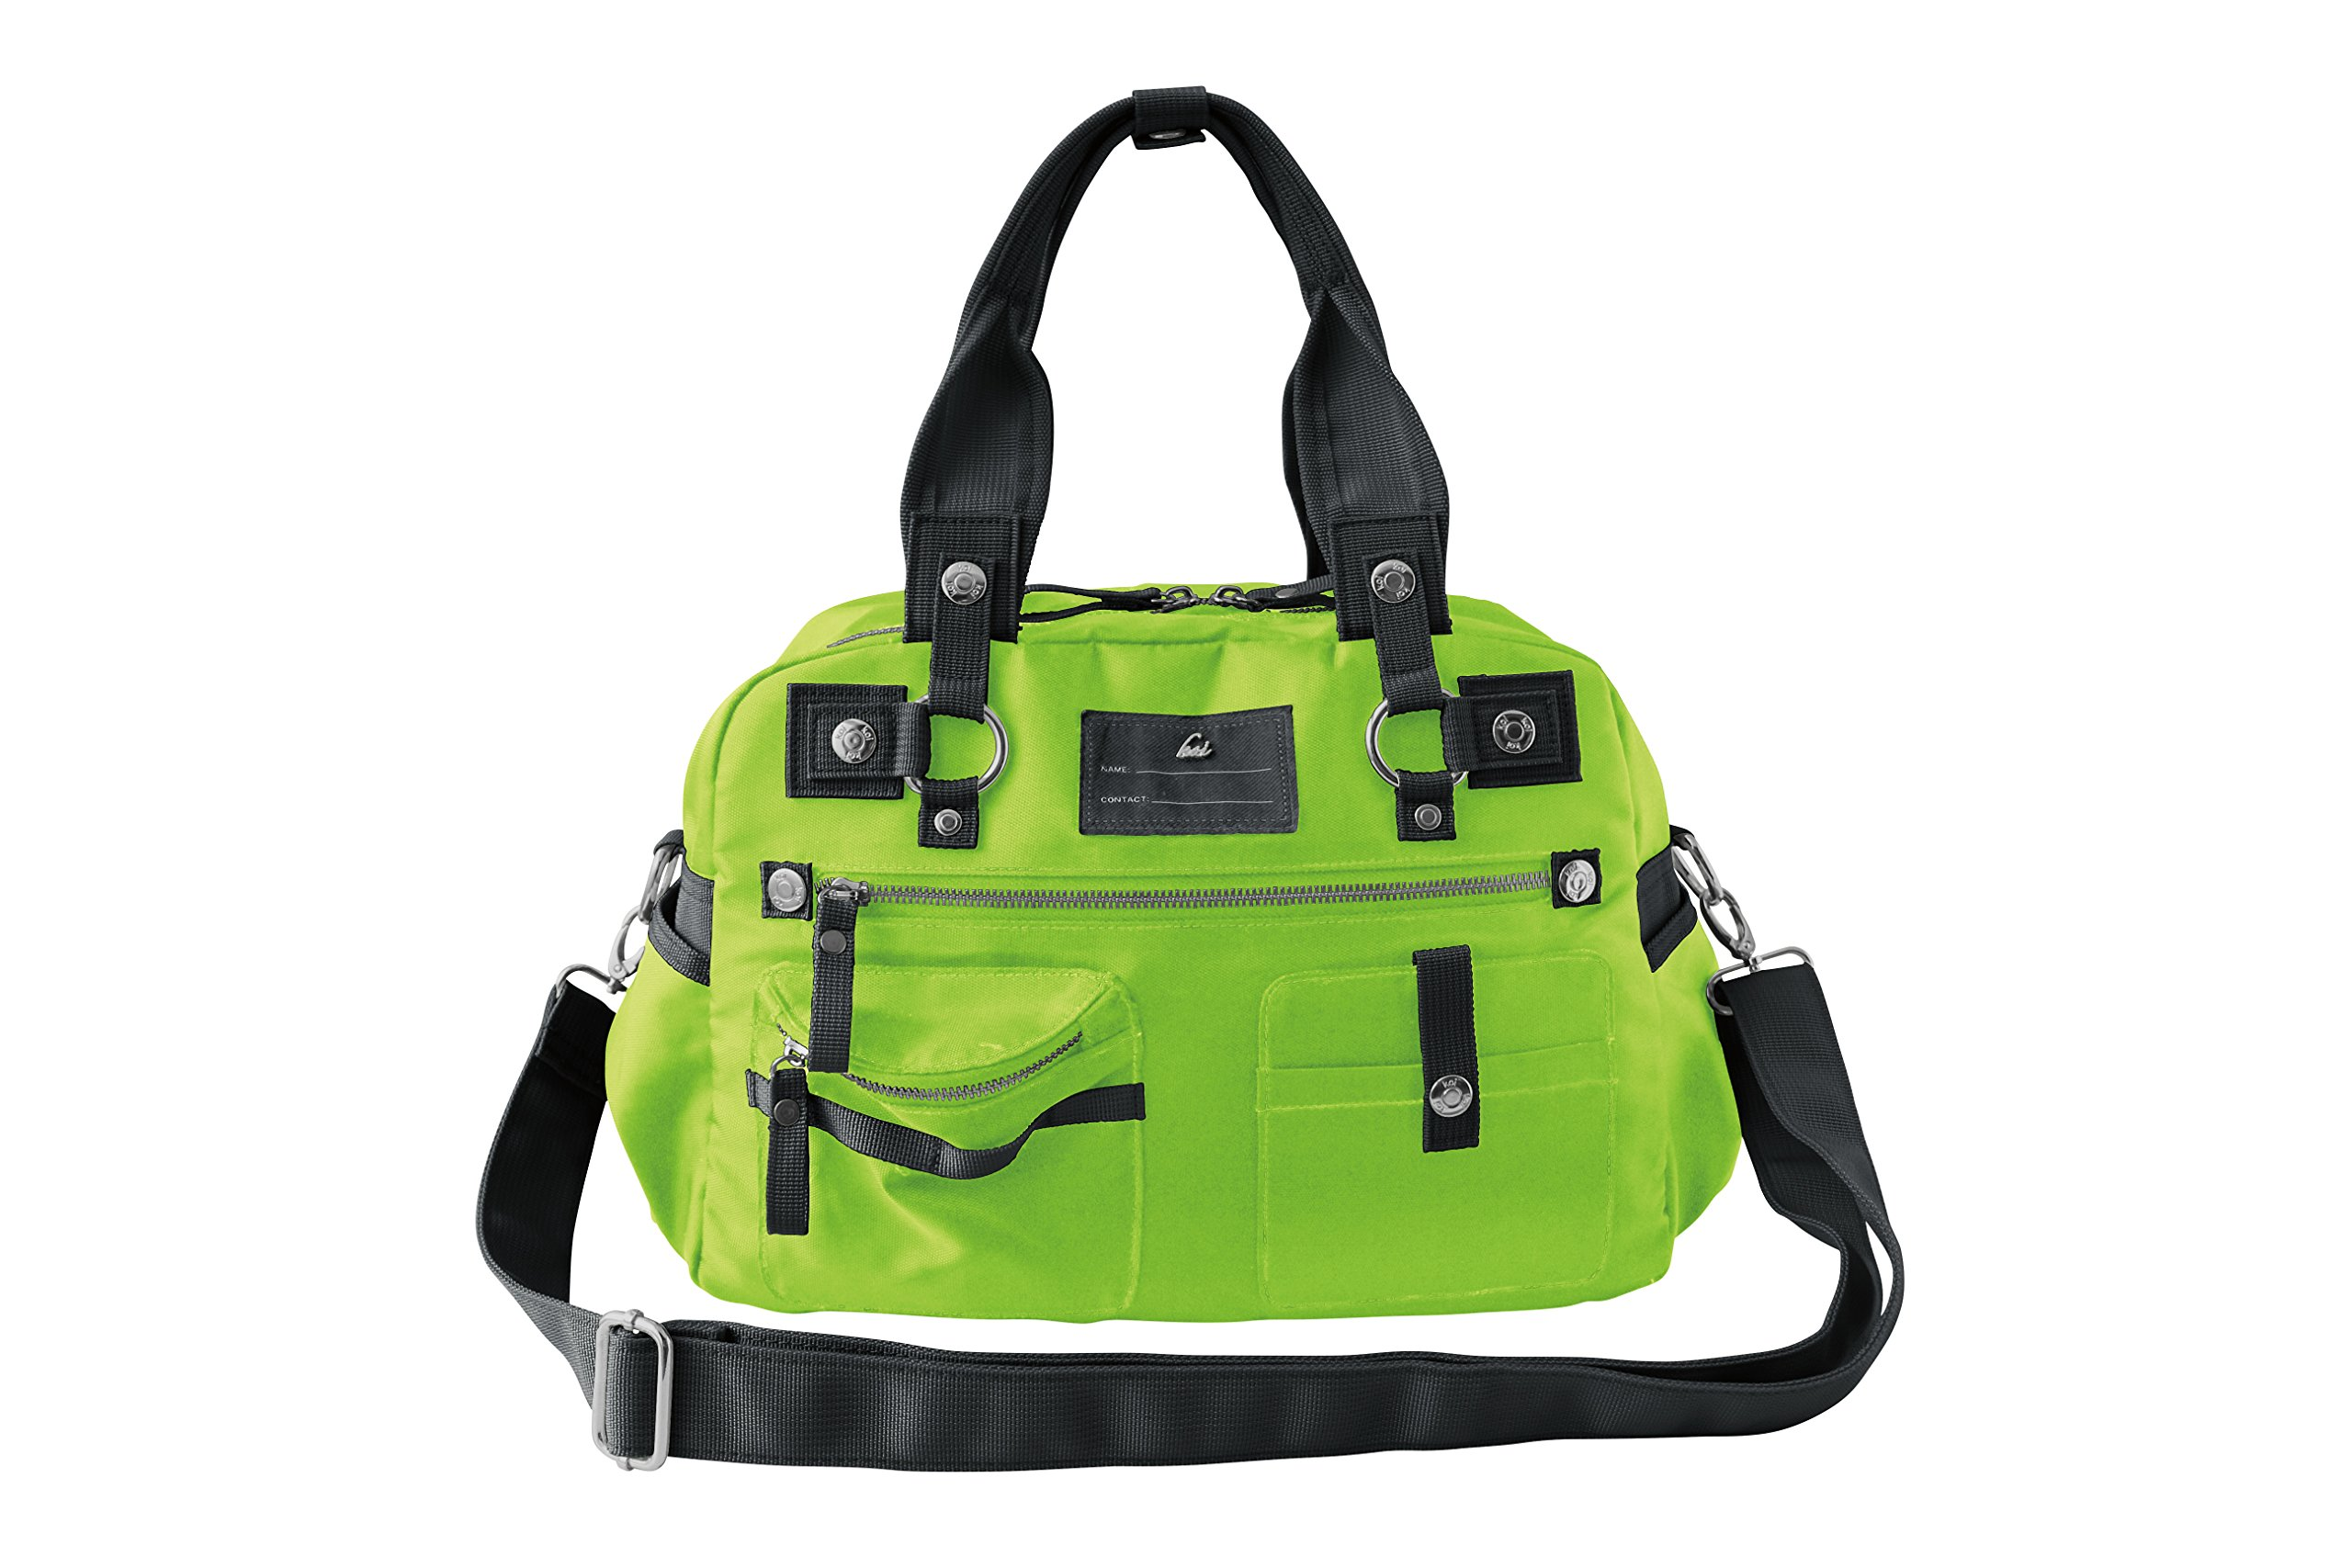 Koi Women's Utility Bag Versatile and Fashionable with Lots Of Pockets (Medium, Green) by KOI